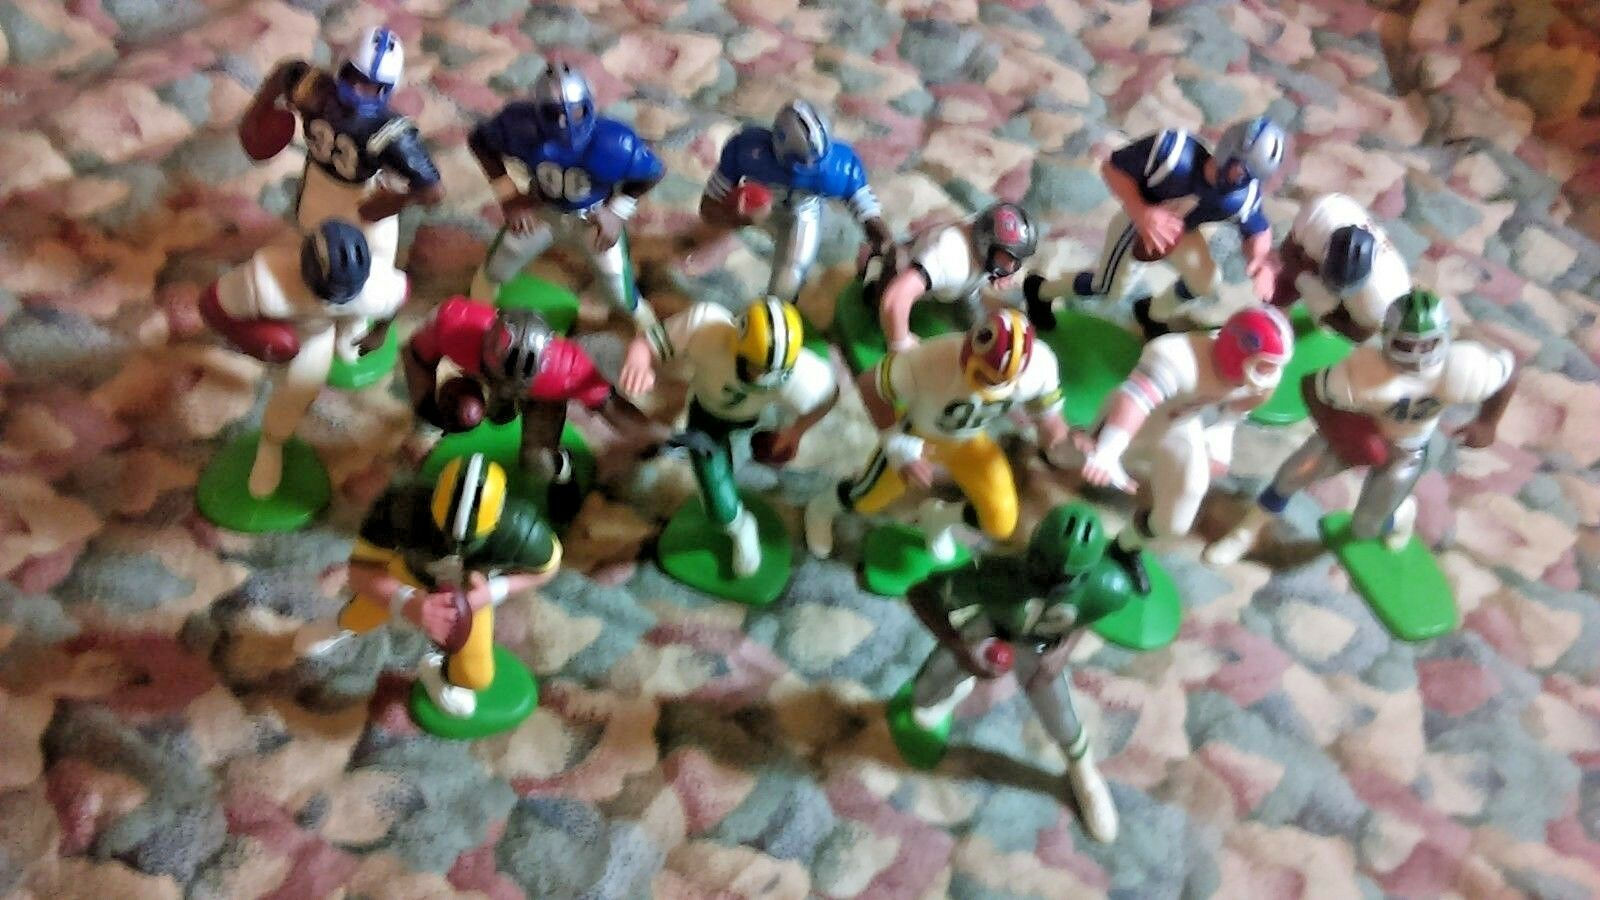 Lot of 14   Baseball Players Action Figures Toys  NFLP Gift For Kids